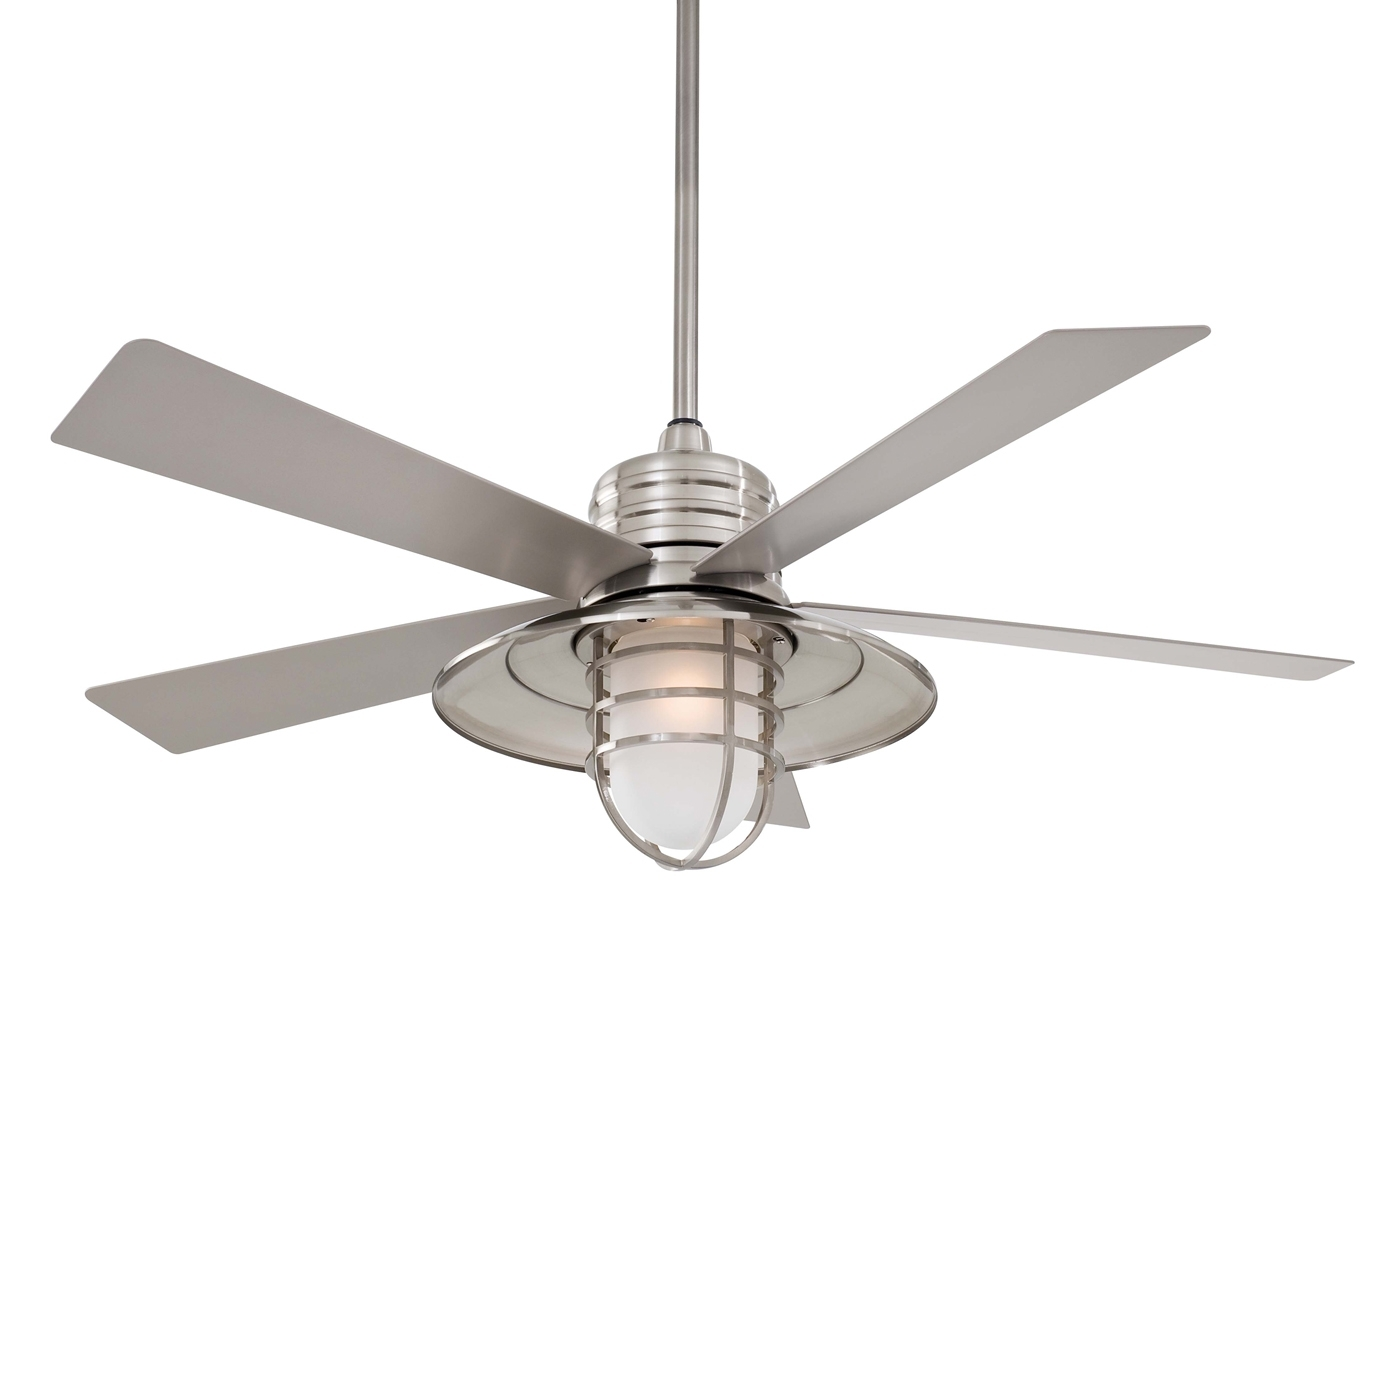 [%Mini Outdoor Ceiling Fan] – 28 Images – Ceiling Fan Fixtures 72 Inch Throughout Well Liked 72 Inch Outdoor Ceiling Fans With Light|72 Inch Outdoor Ceiling Fans With Light With Regard To Latest Mini Outdoor Ceiling Fan] – 28 Images – Ceiling Fan Fixtures 72 Inch|2019 72 Inch Outdoor Ceiling Fans With Light Pertaining To Mini Outdoor Ceiling Fan] – 28 Images – Ceiling Fan Fixtures 72 Inch|Popular Mini Outdoor Ceiling Fan] – 28 Images – Ceiling Fan Fixtures 72 Inch With 72 Inch Outdoor Ceiling Fans With Light%] (View 1 of 20)